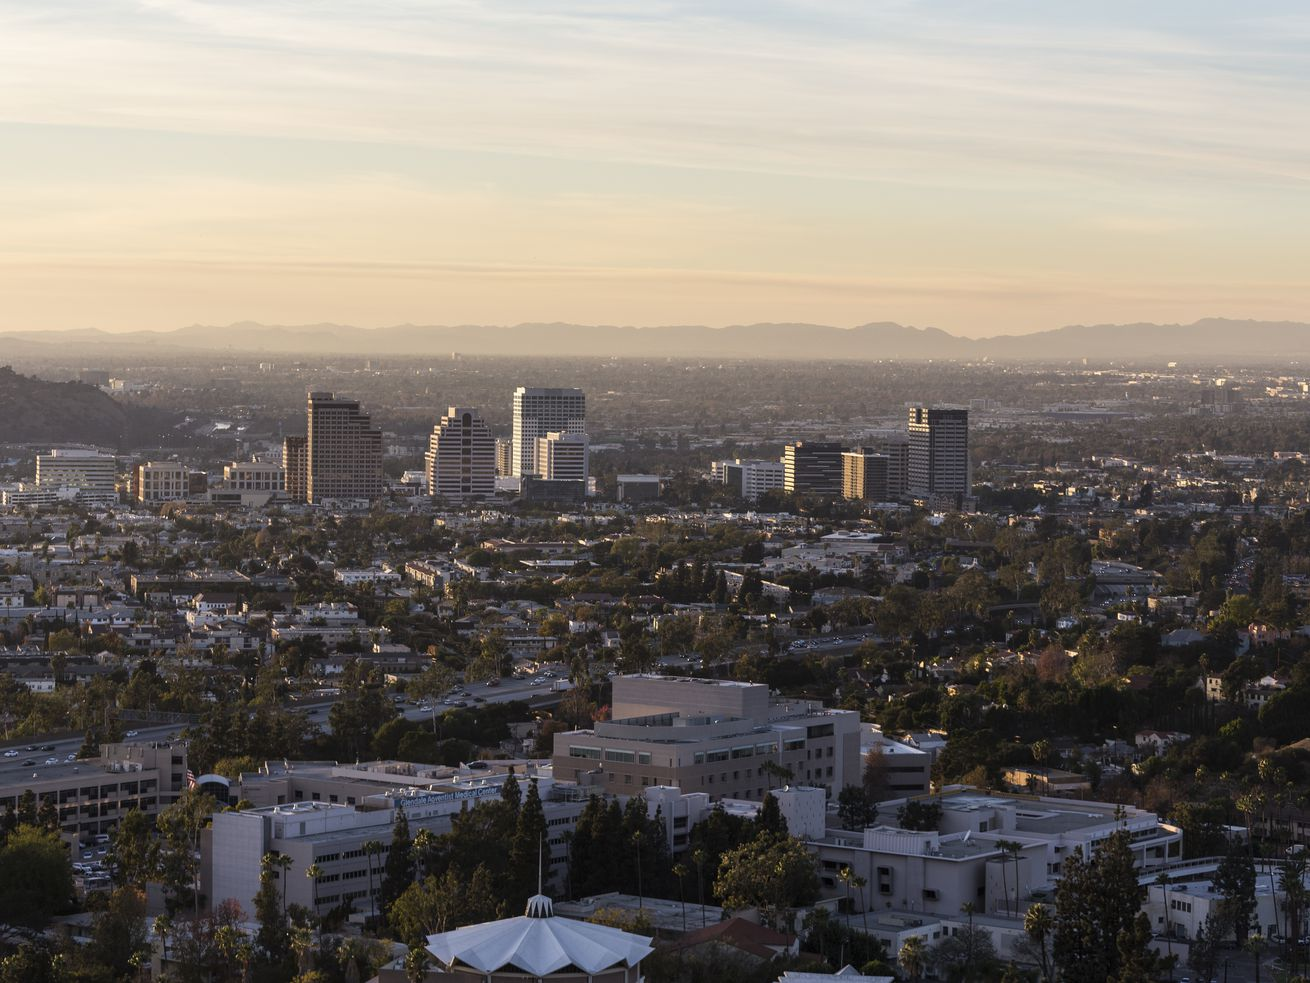 In Glendale, more than half of tenants spend over 35 percent of their income on rent.